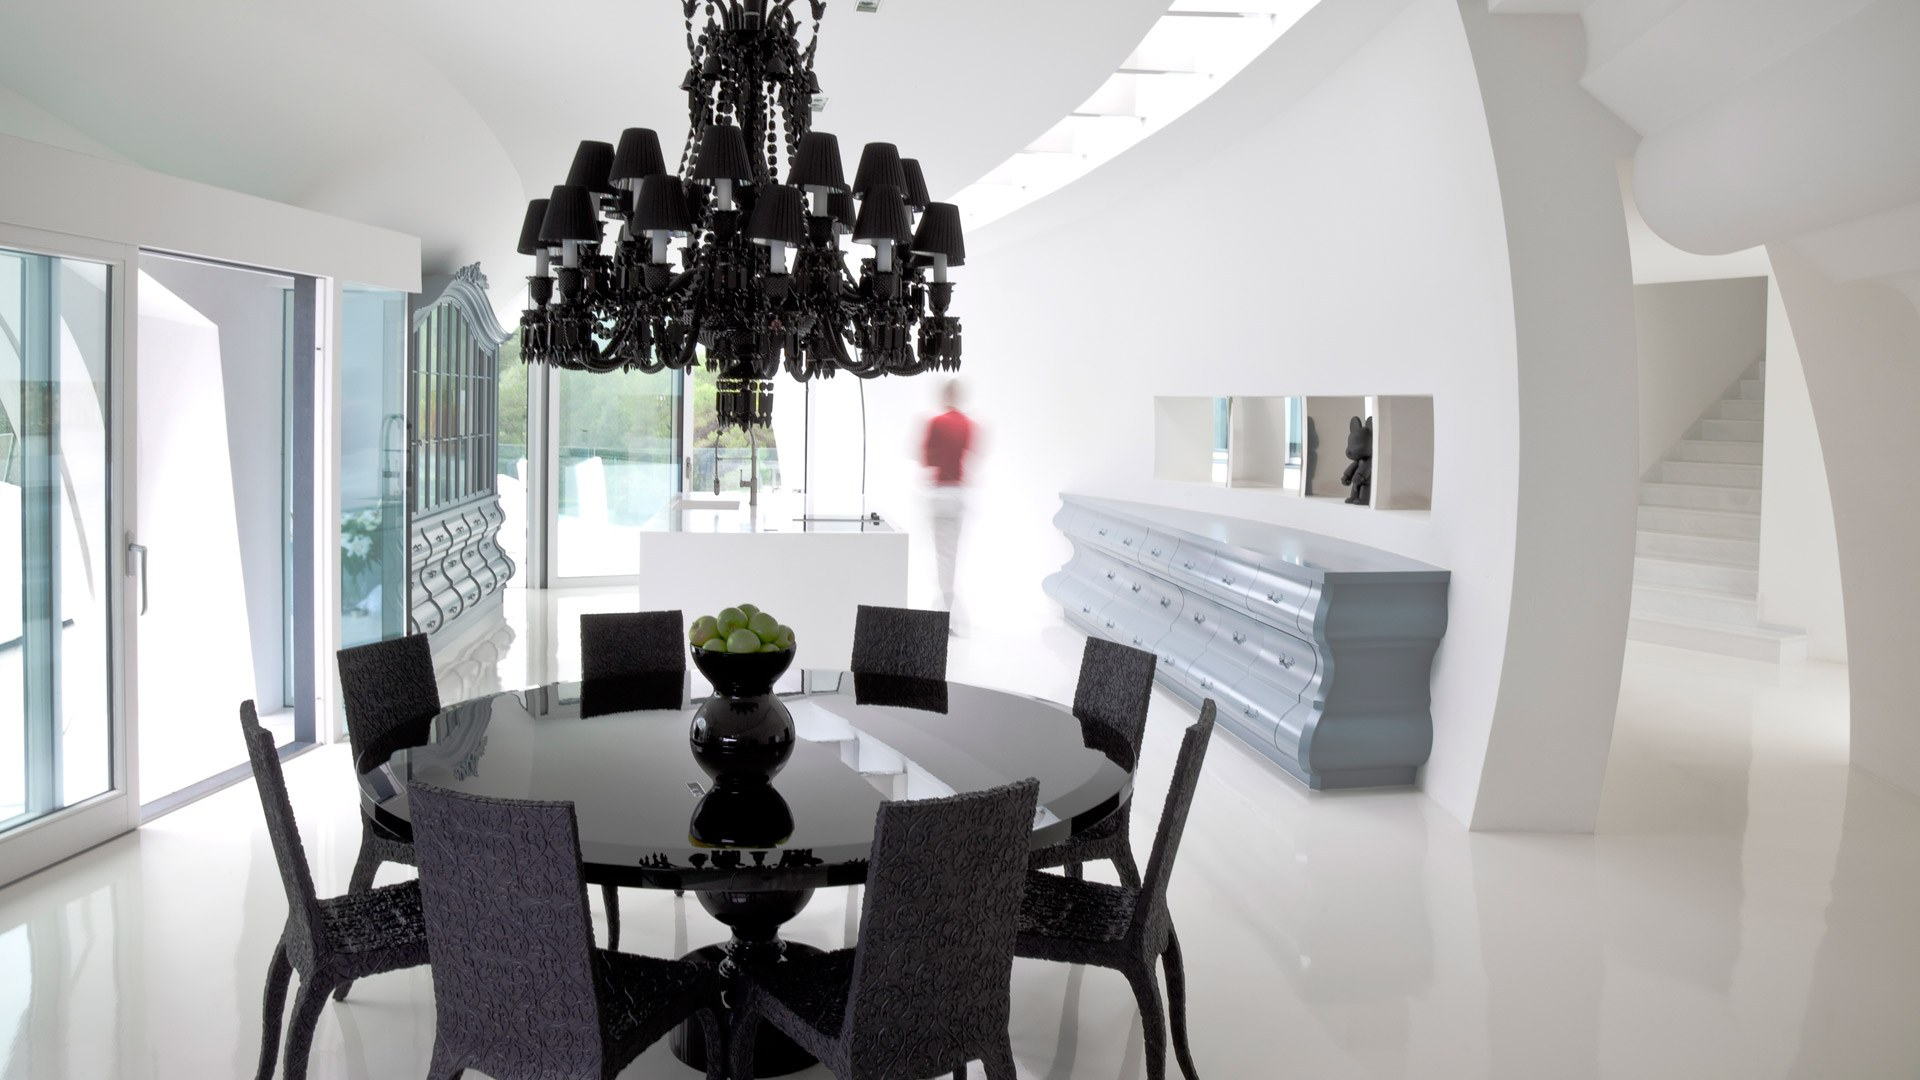 marcel wanders marcel wanders Luxurious Dining Room Ideas By Top Interior Designer Marcel Wanders 9 Luxurious Dining Room Ideas By Top Interior Designer Marcel Wanders